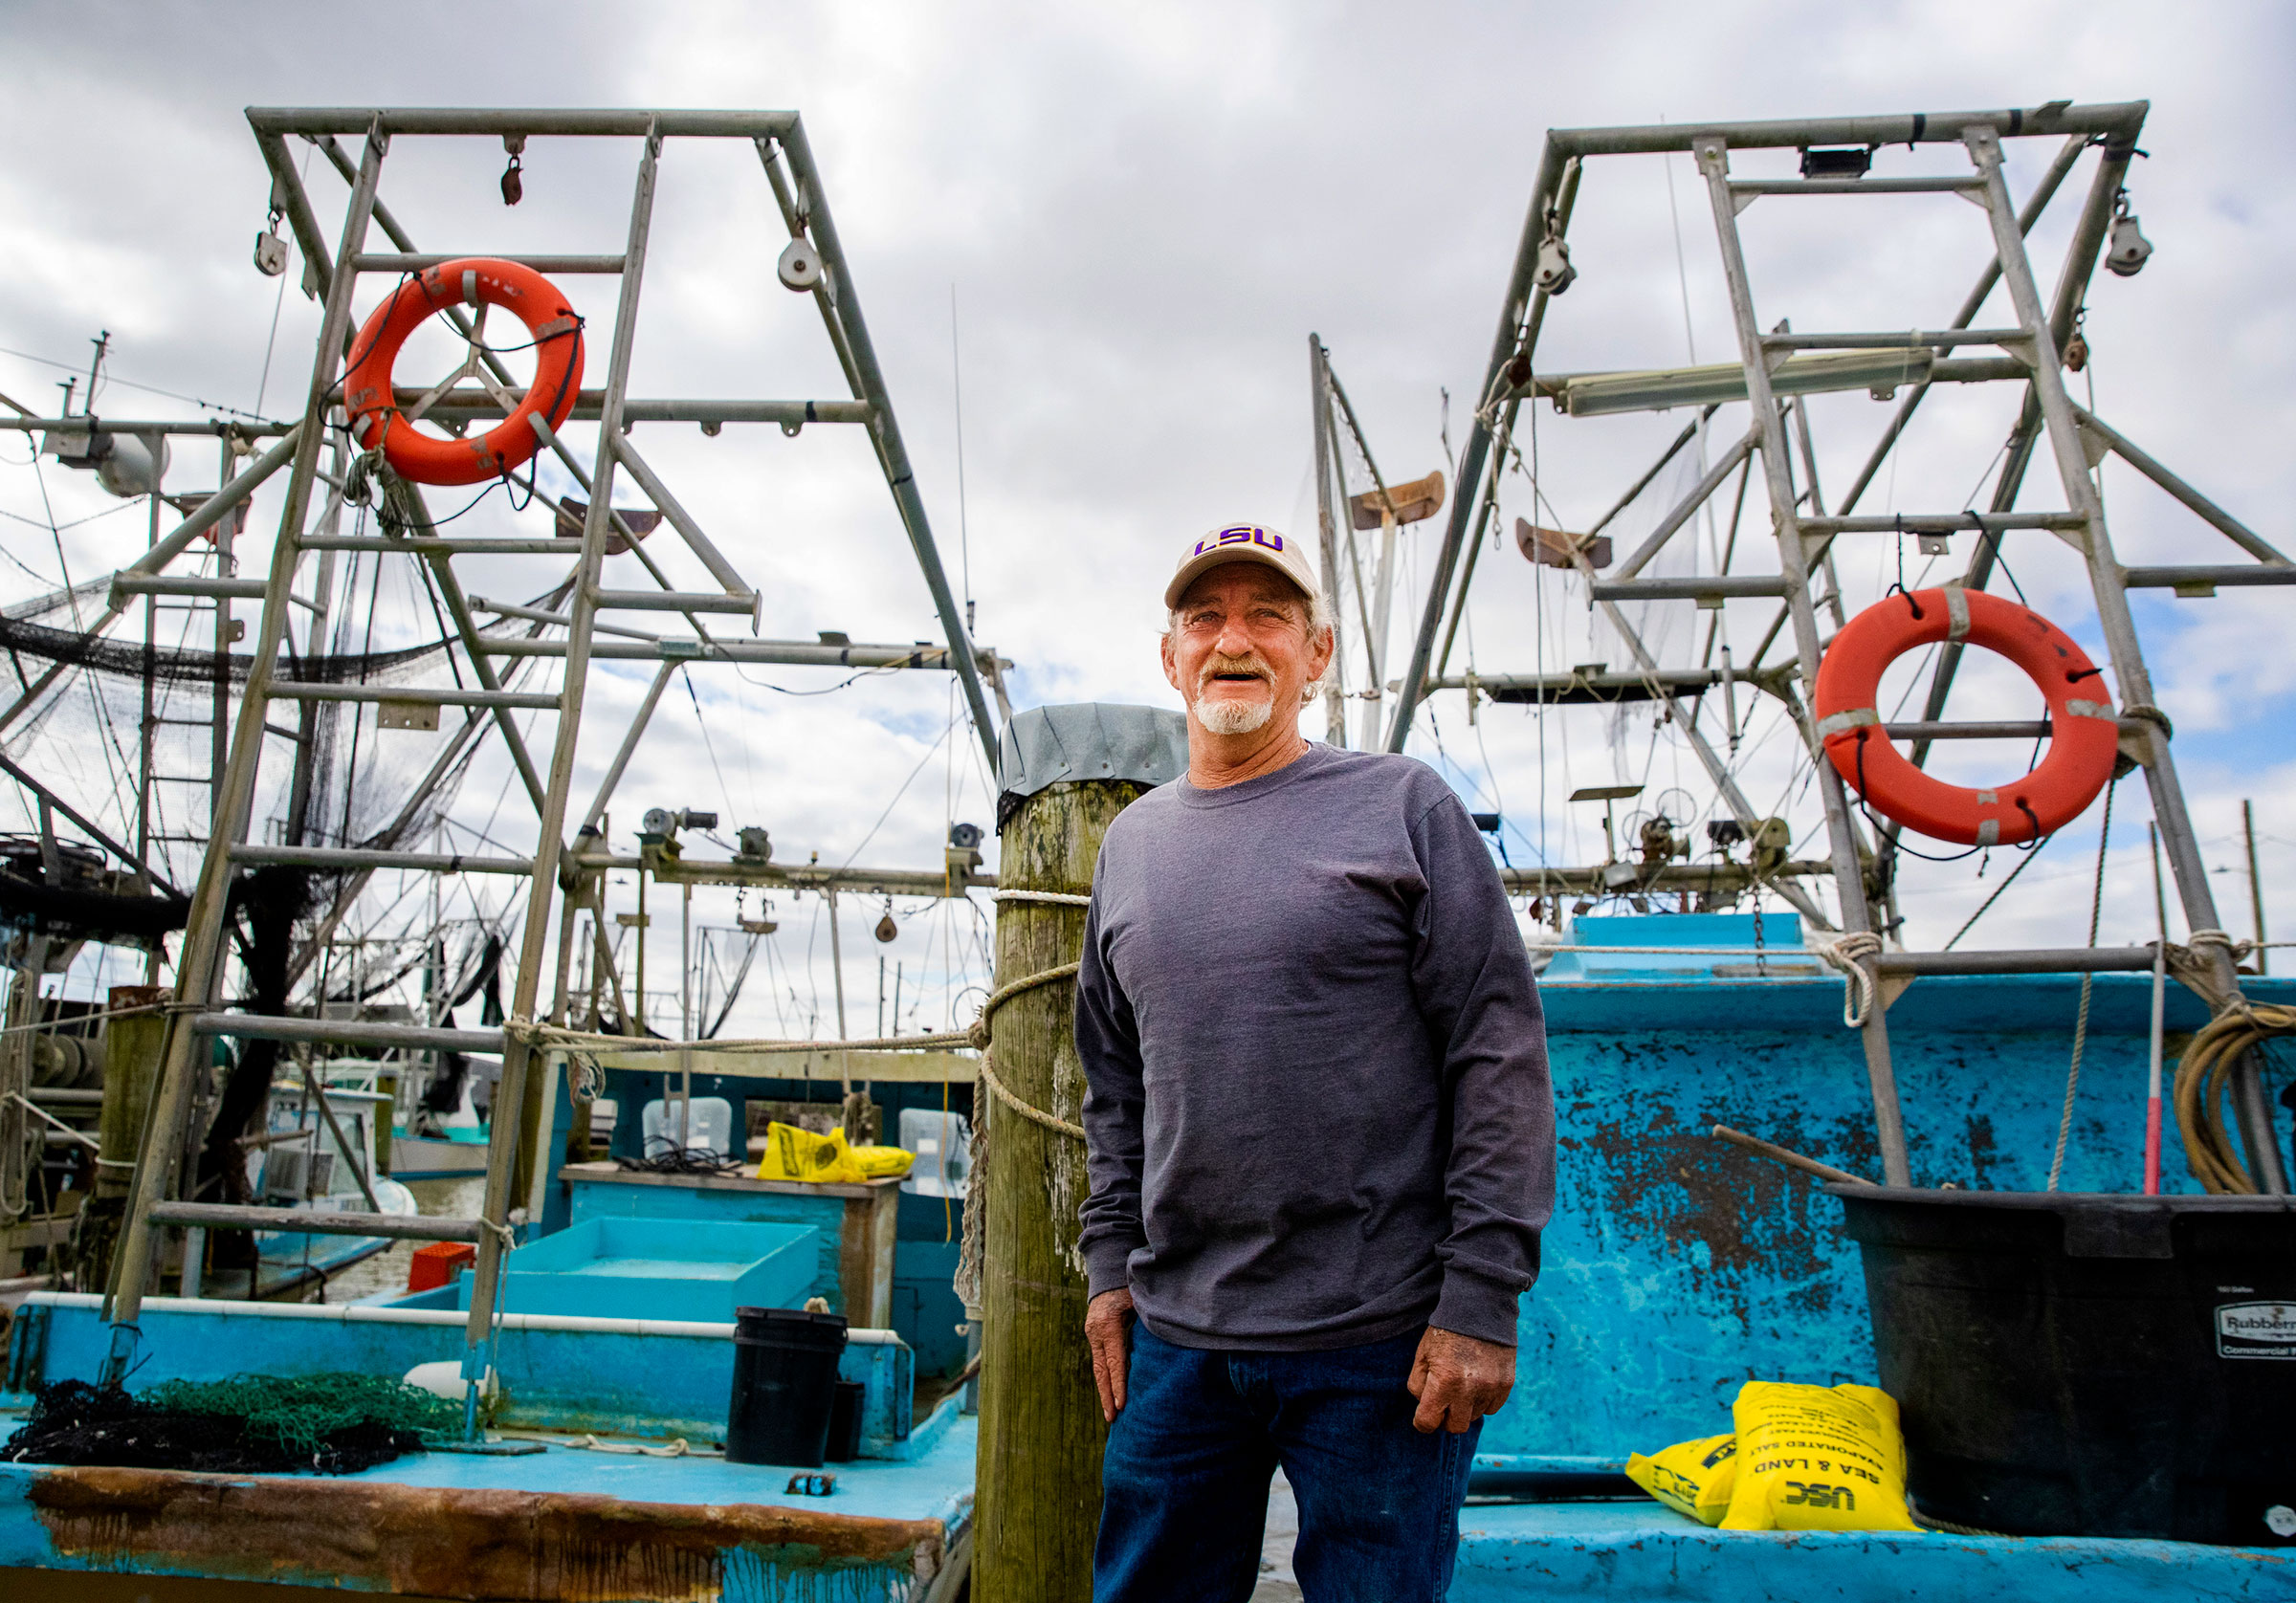 Third-generation shrimper Acy Cooper worries the project will put him out of business.